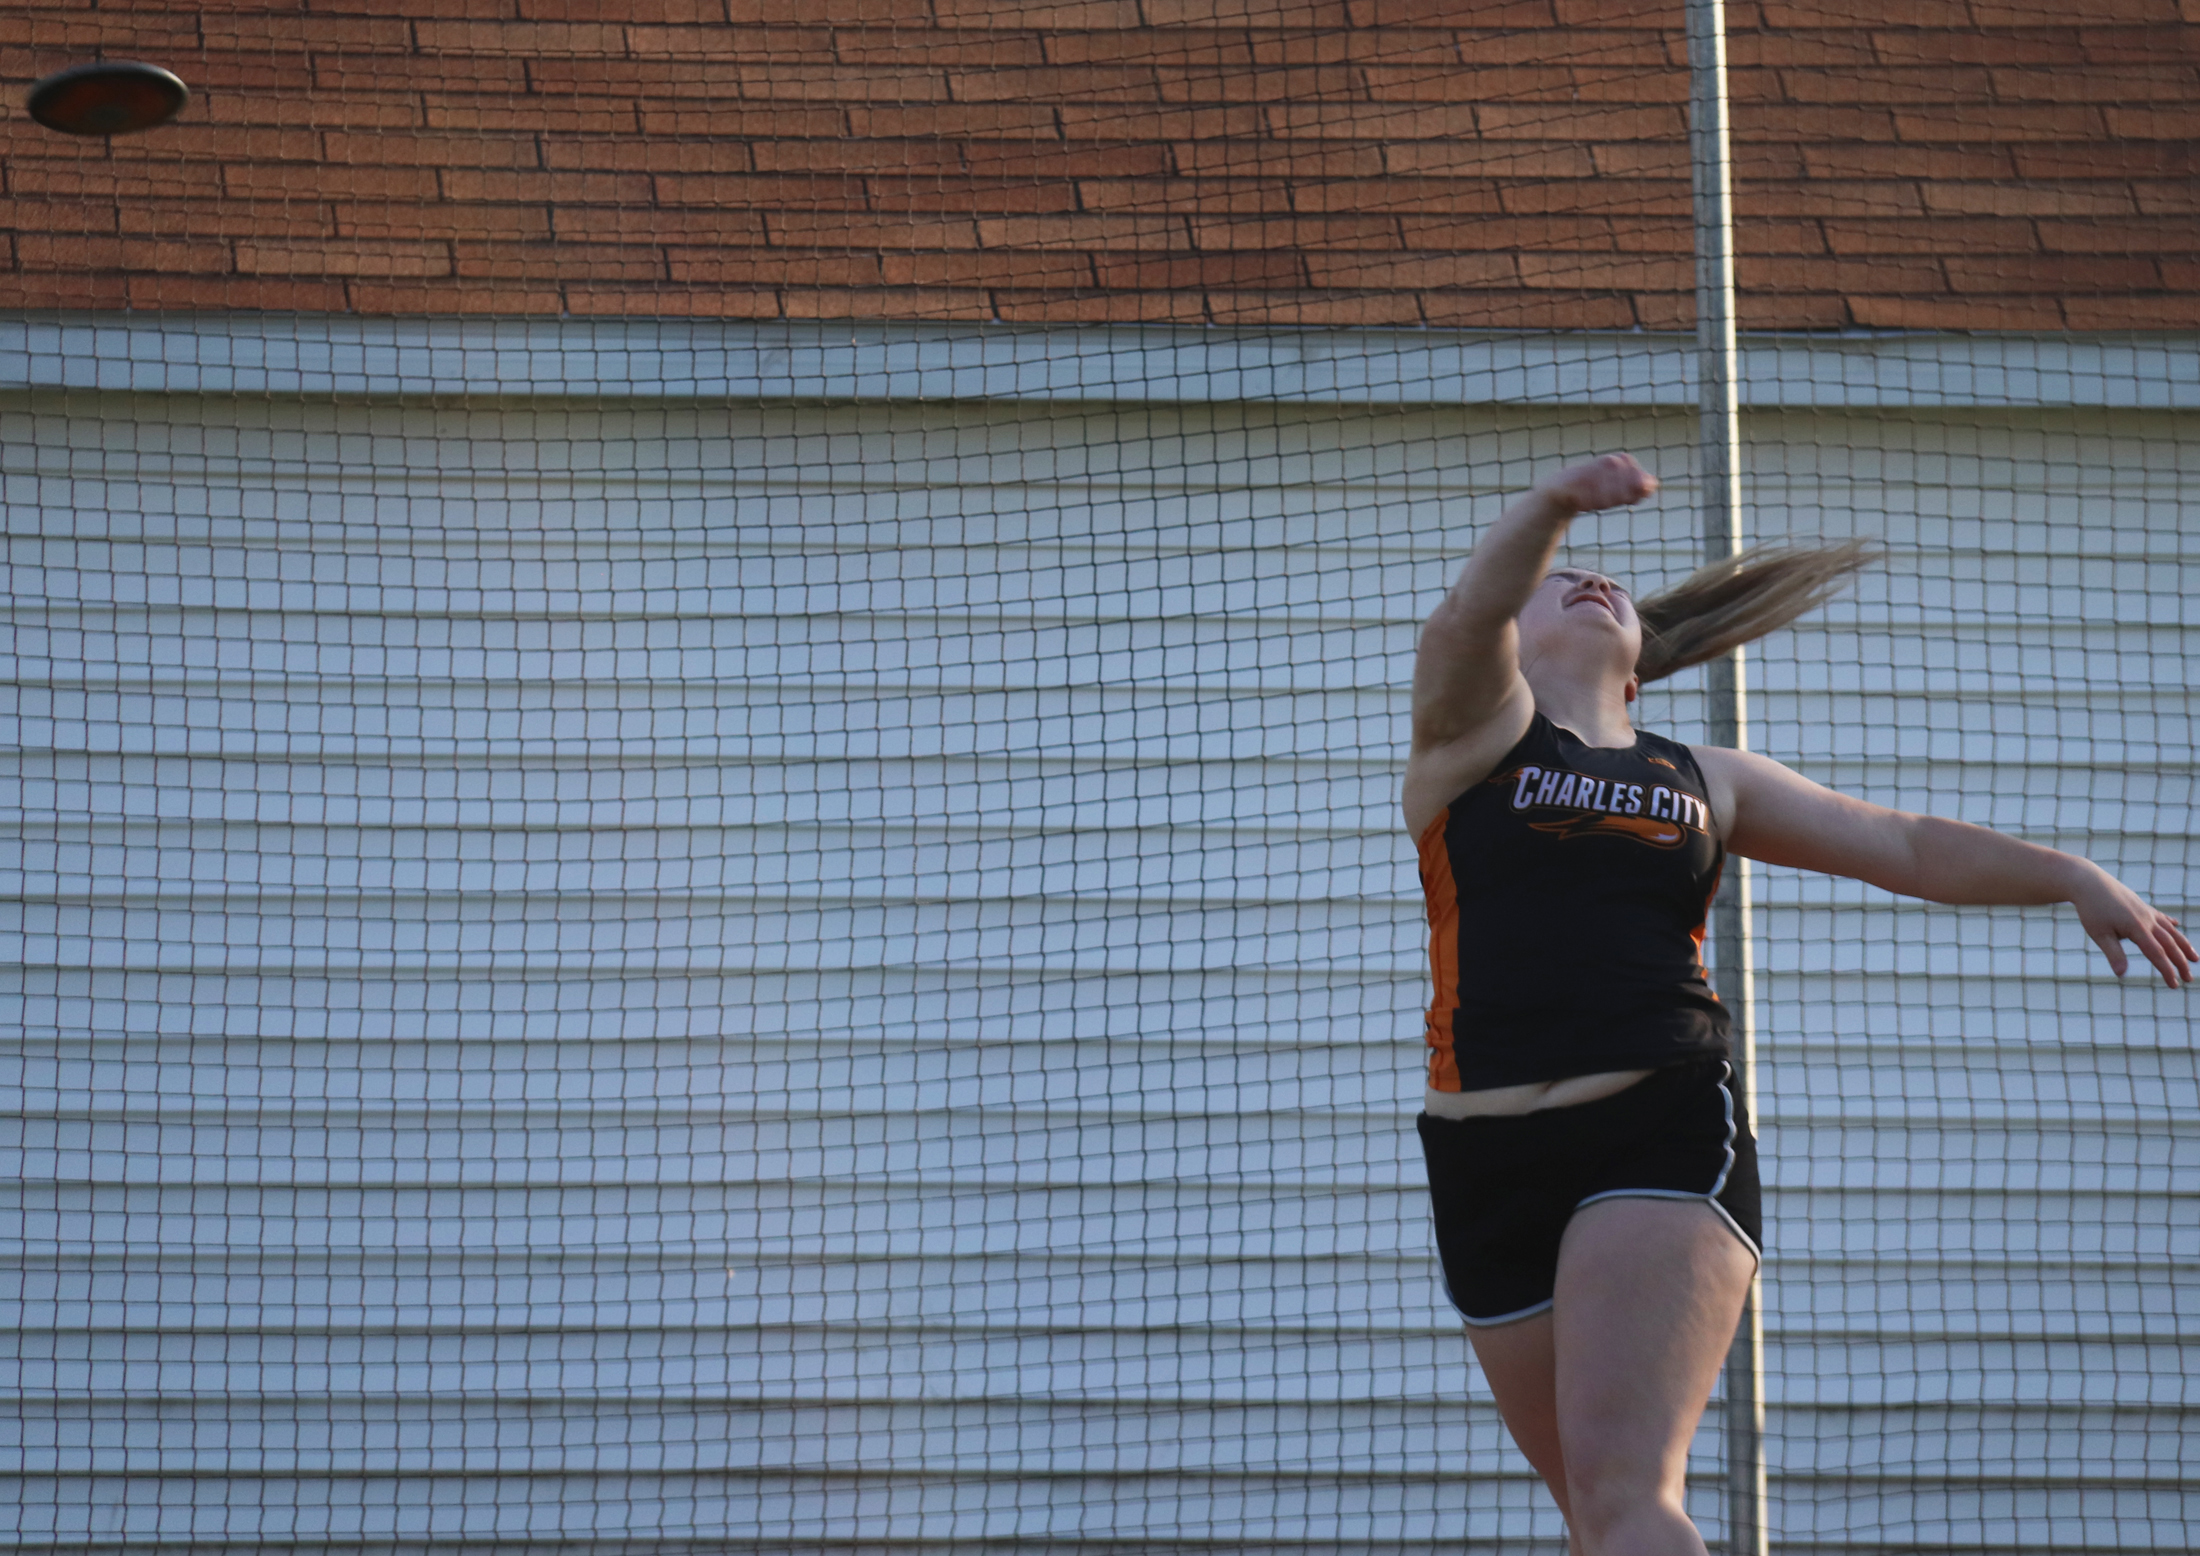 Returning Comet girl T&F stars pick up where they left off